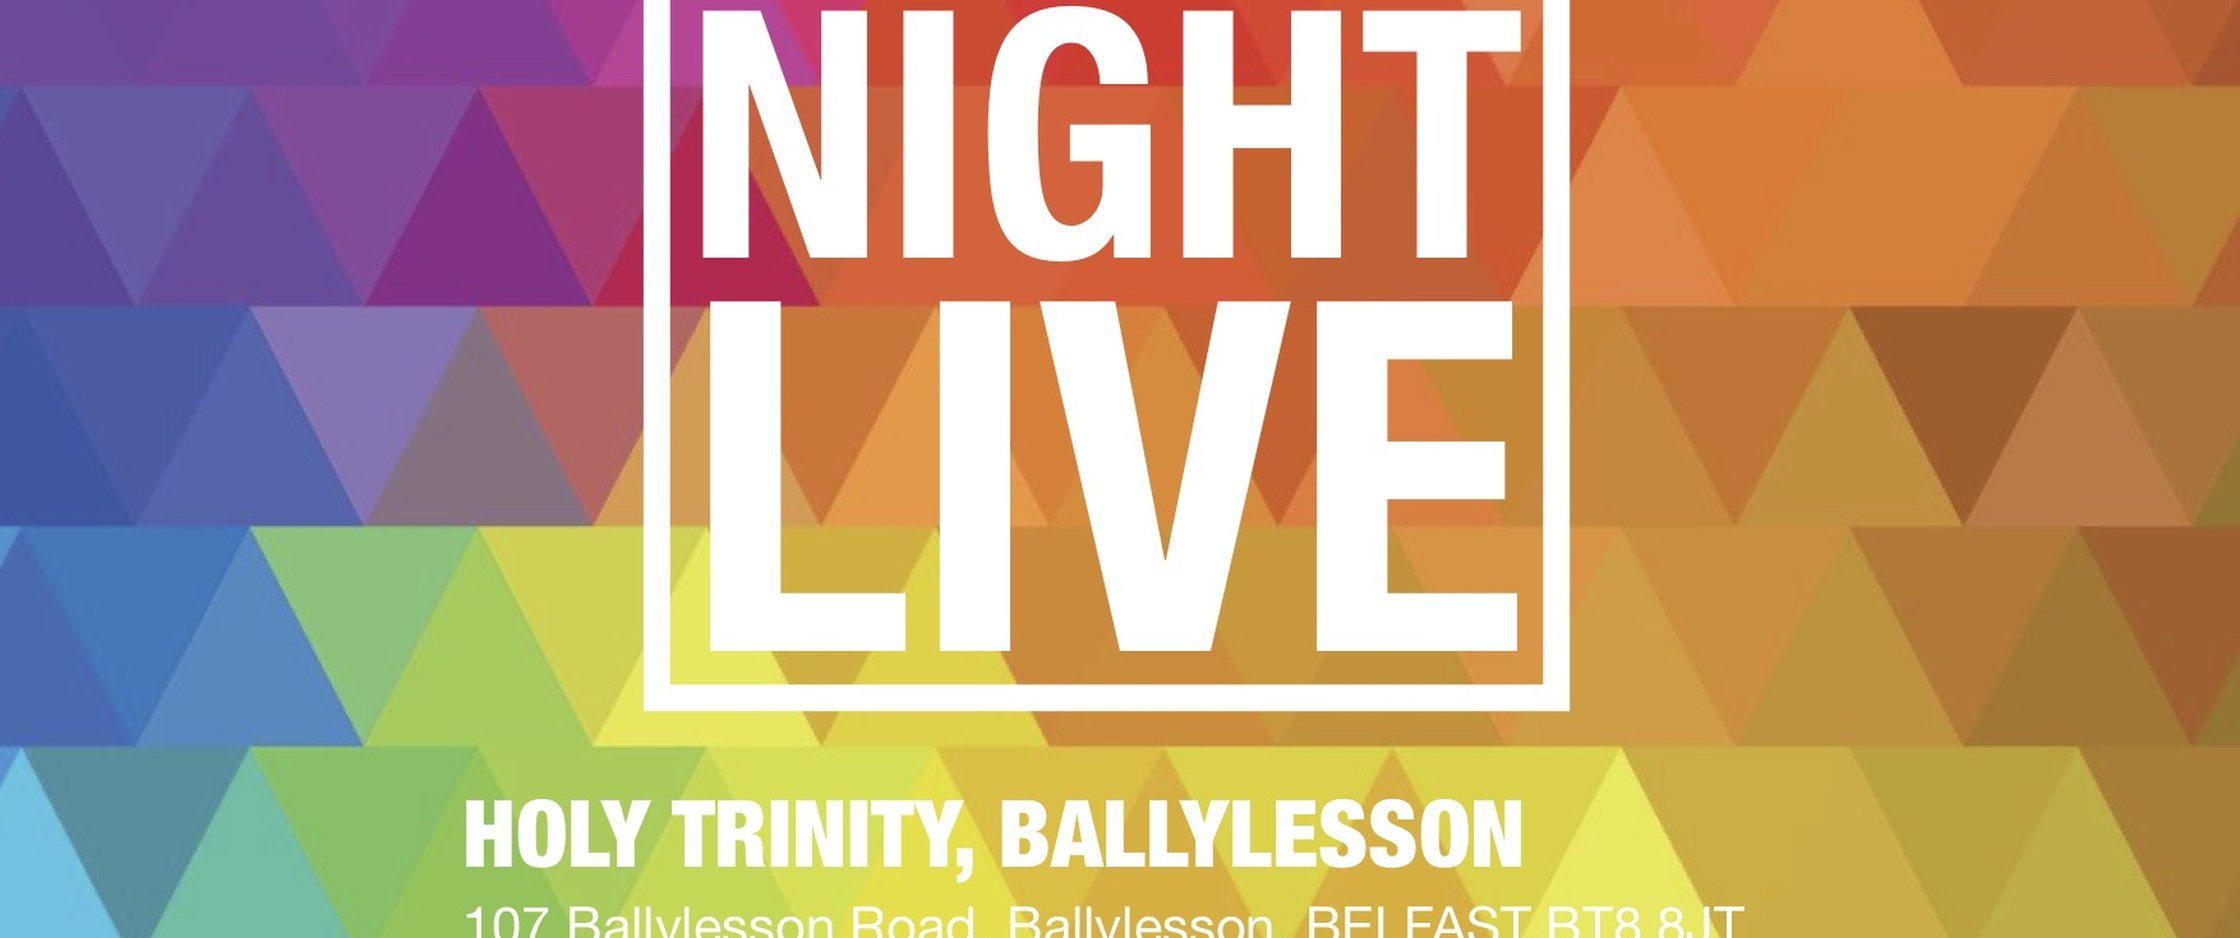 Saturday Night Live at Ballylesson